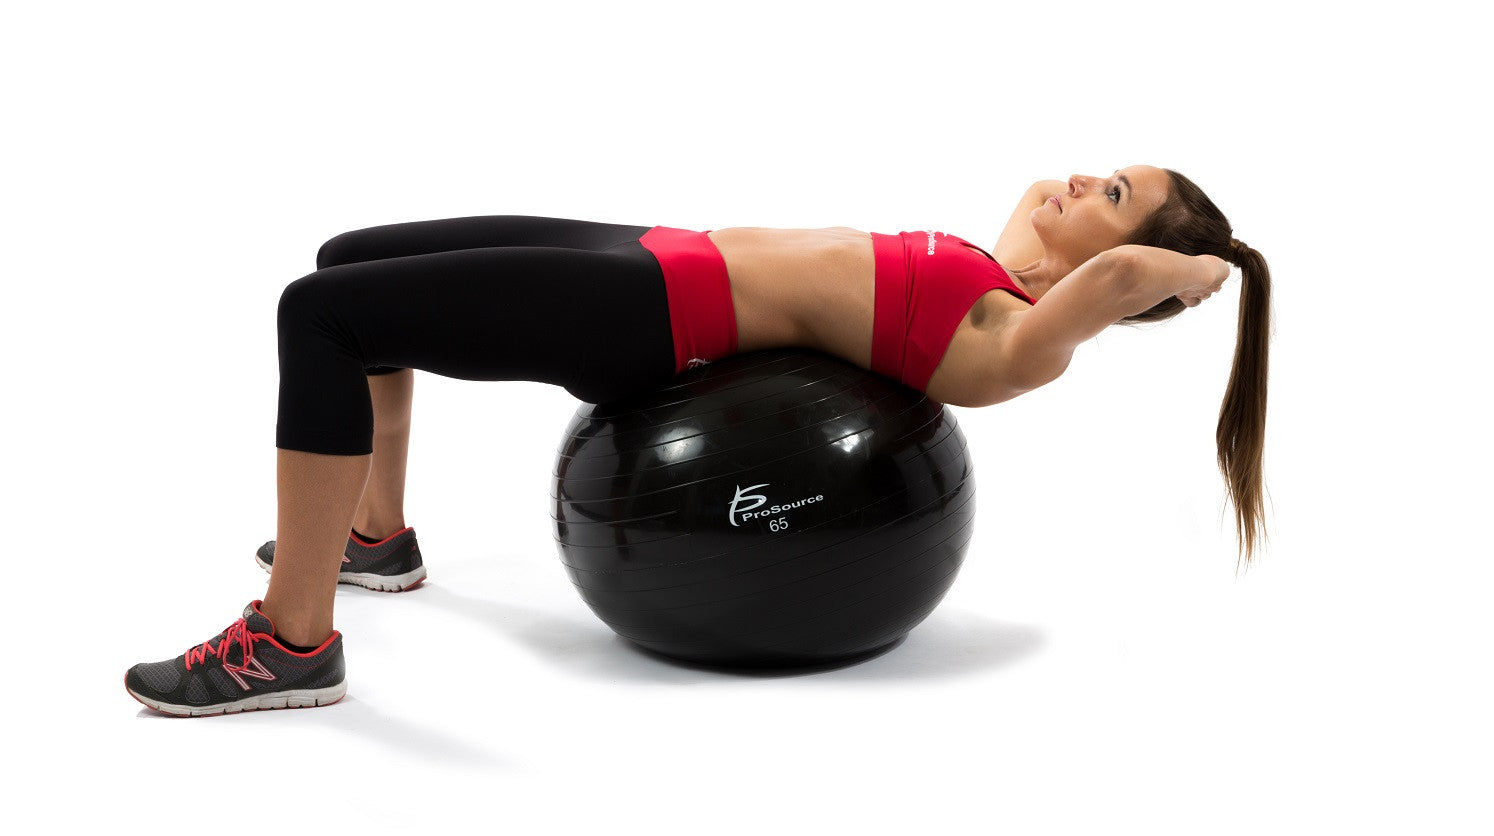 ProSource Stabillity Exercise Balls - swiss ball | exercise ball chair | workout ball | best exercise ball